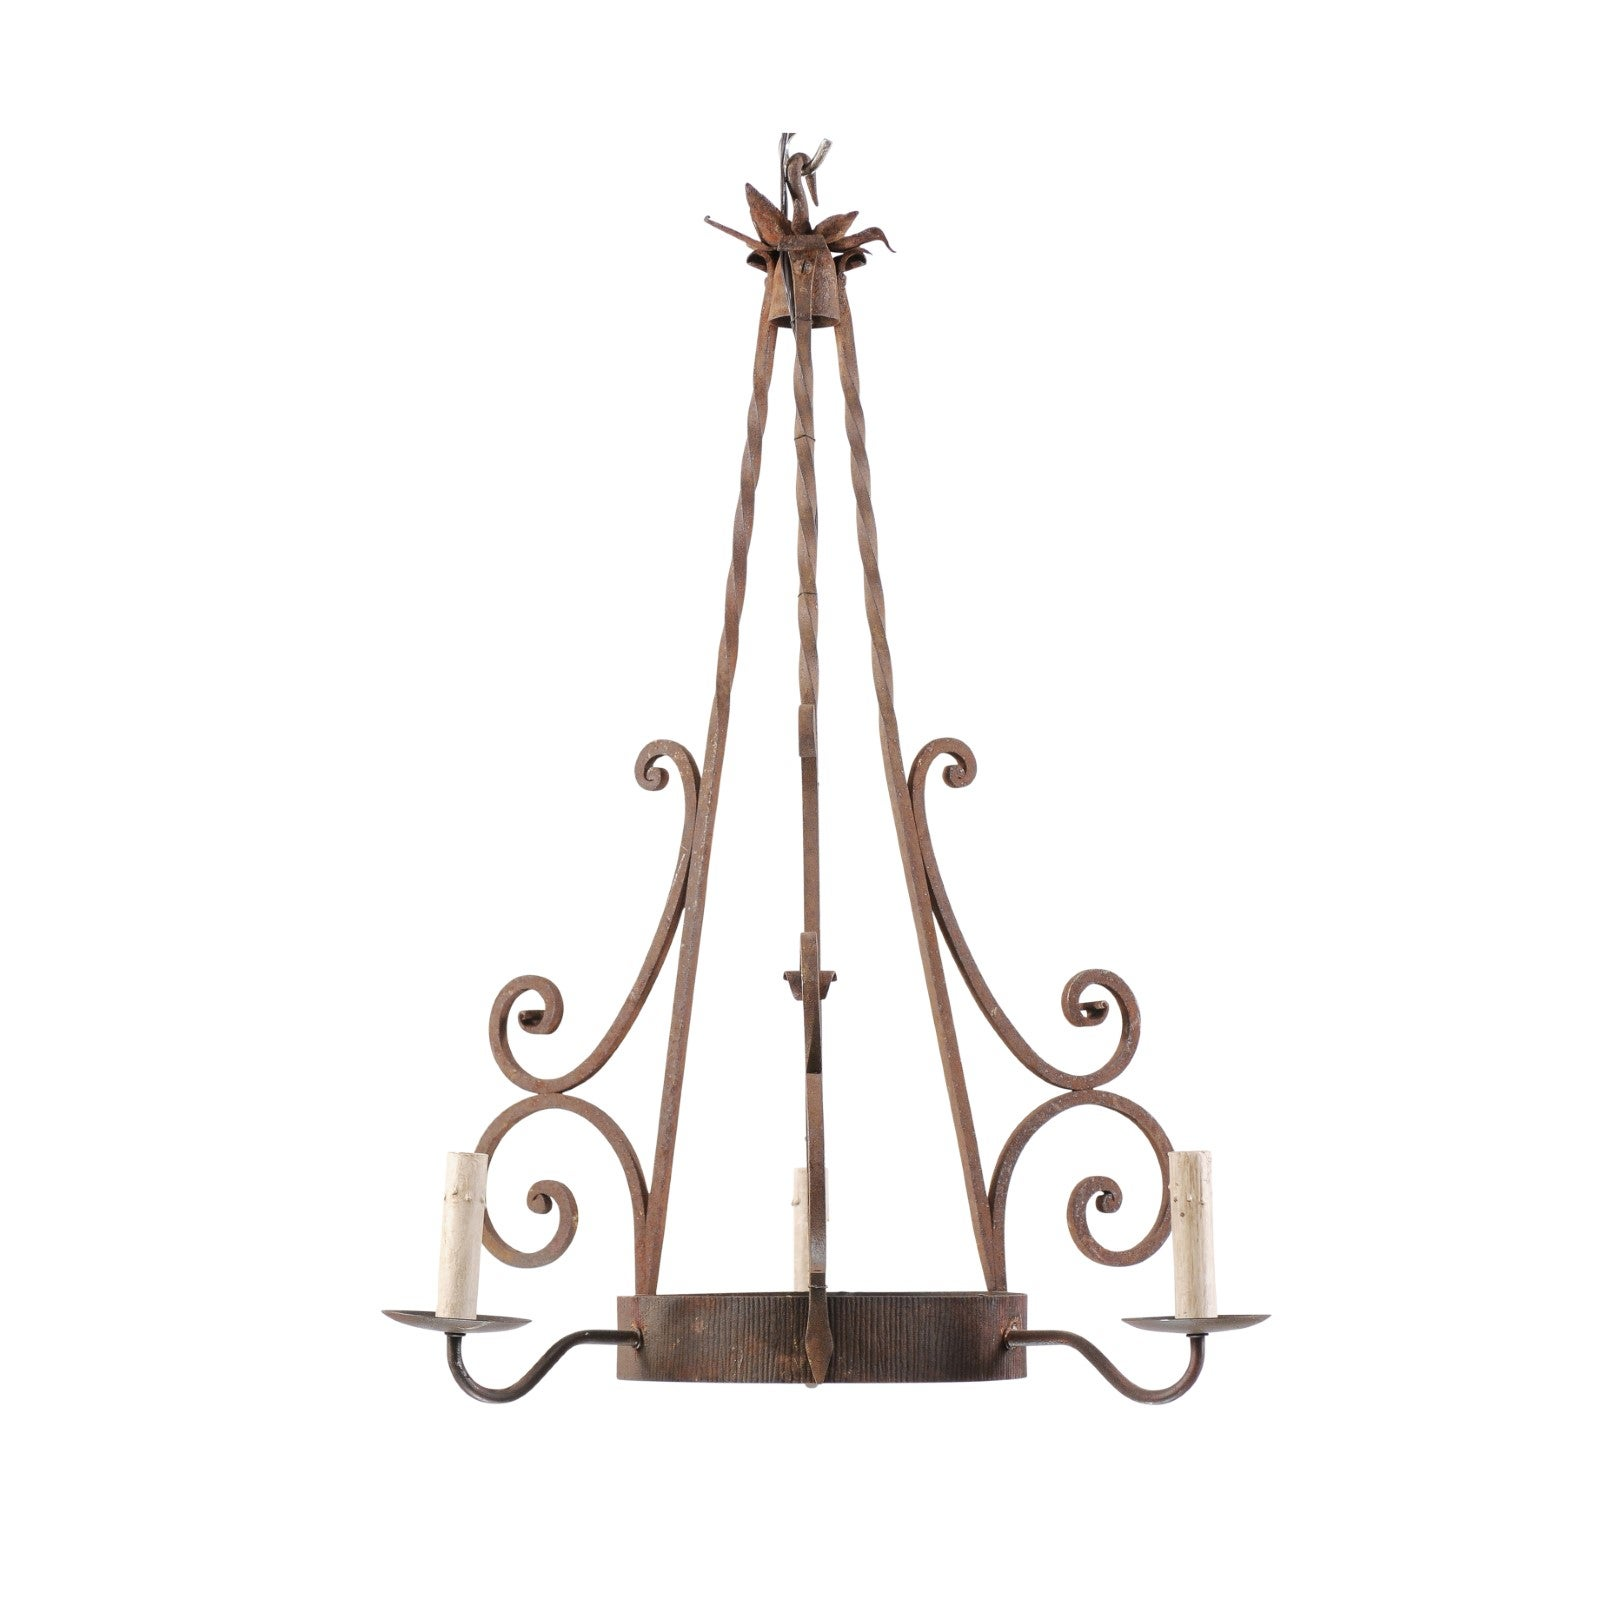 French Midcentury Three-Light Iron Chandelier with Scrolled Accents